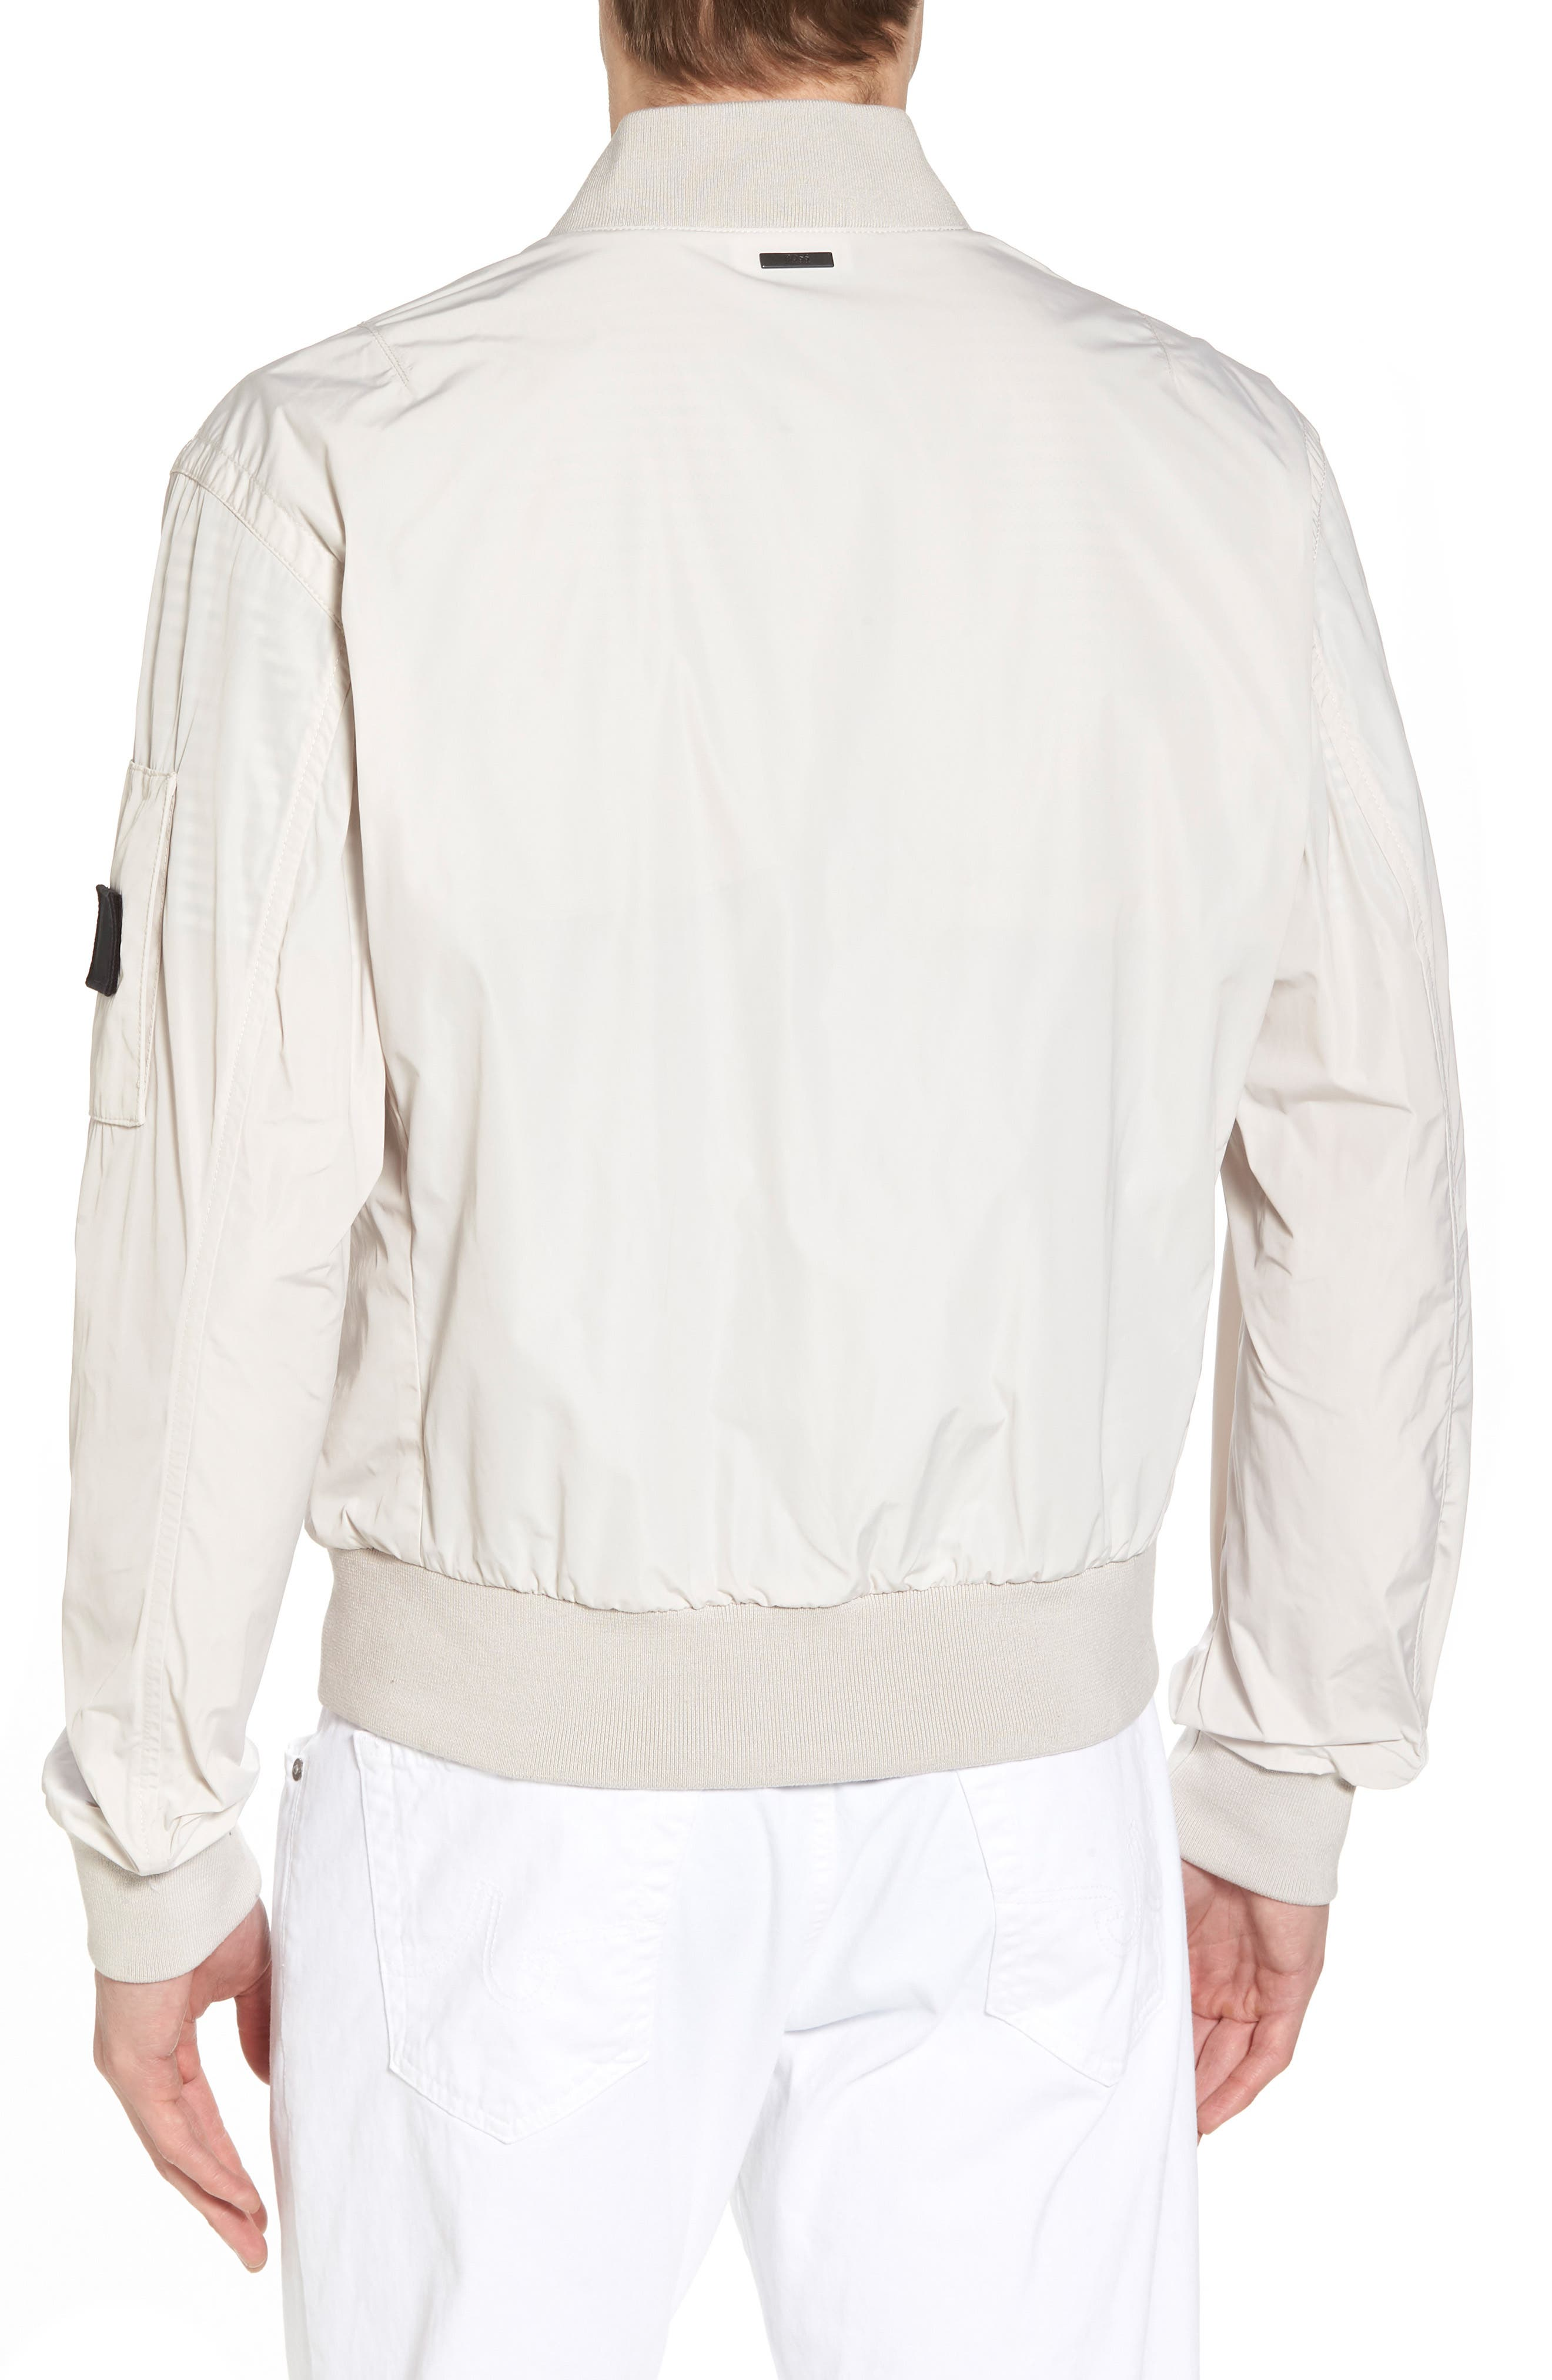 Regular Fit Bomber Jacket,                             Alternate thumbnail 2, color,                             102